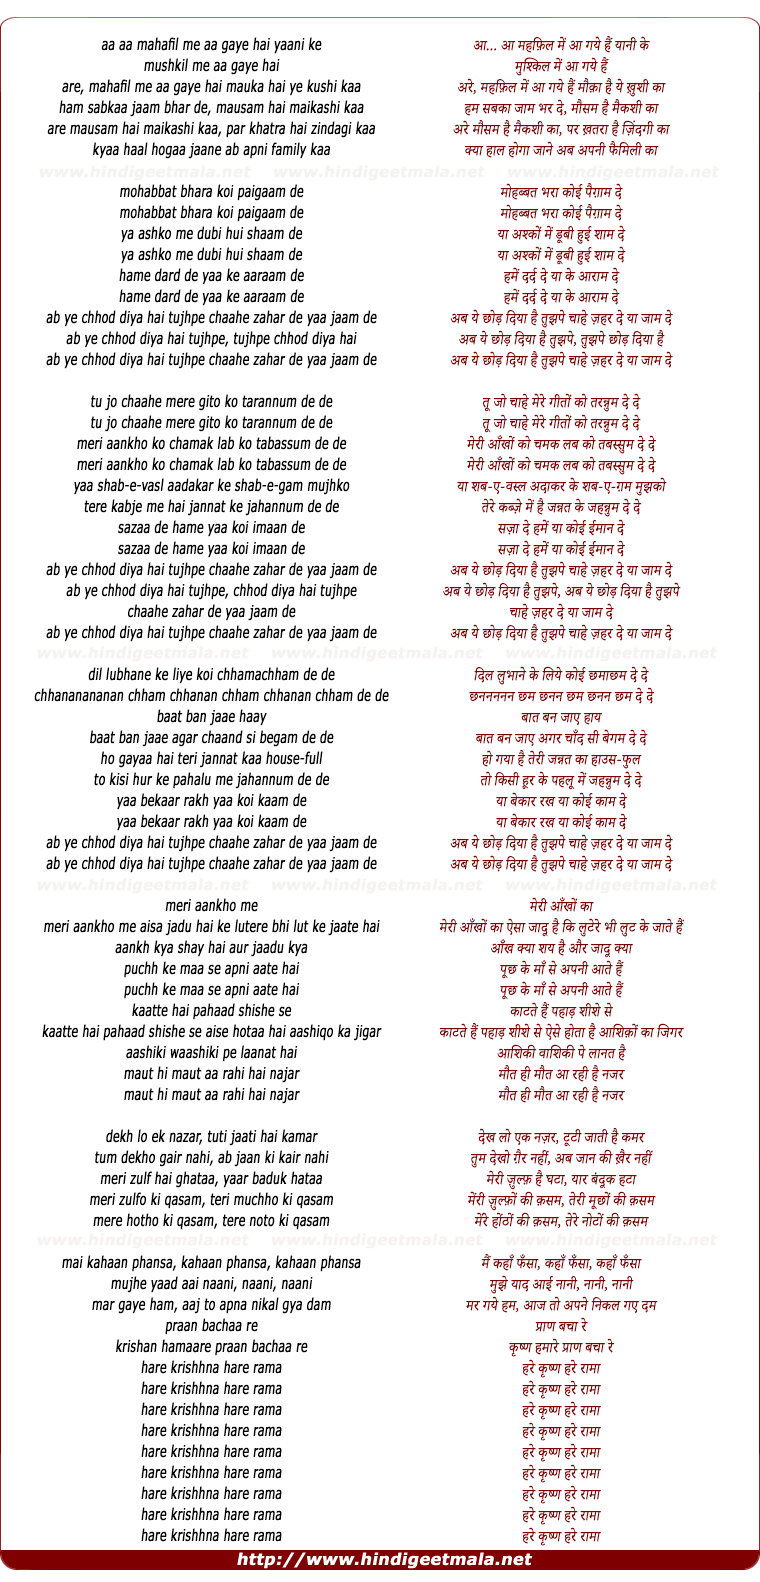 lyrics of song Mohabbat Bharaa Koi Paigaam De Yaa Ashkon Men Dubi Hui Shaam De